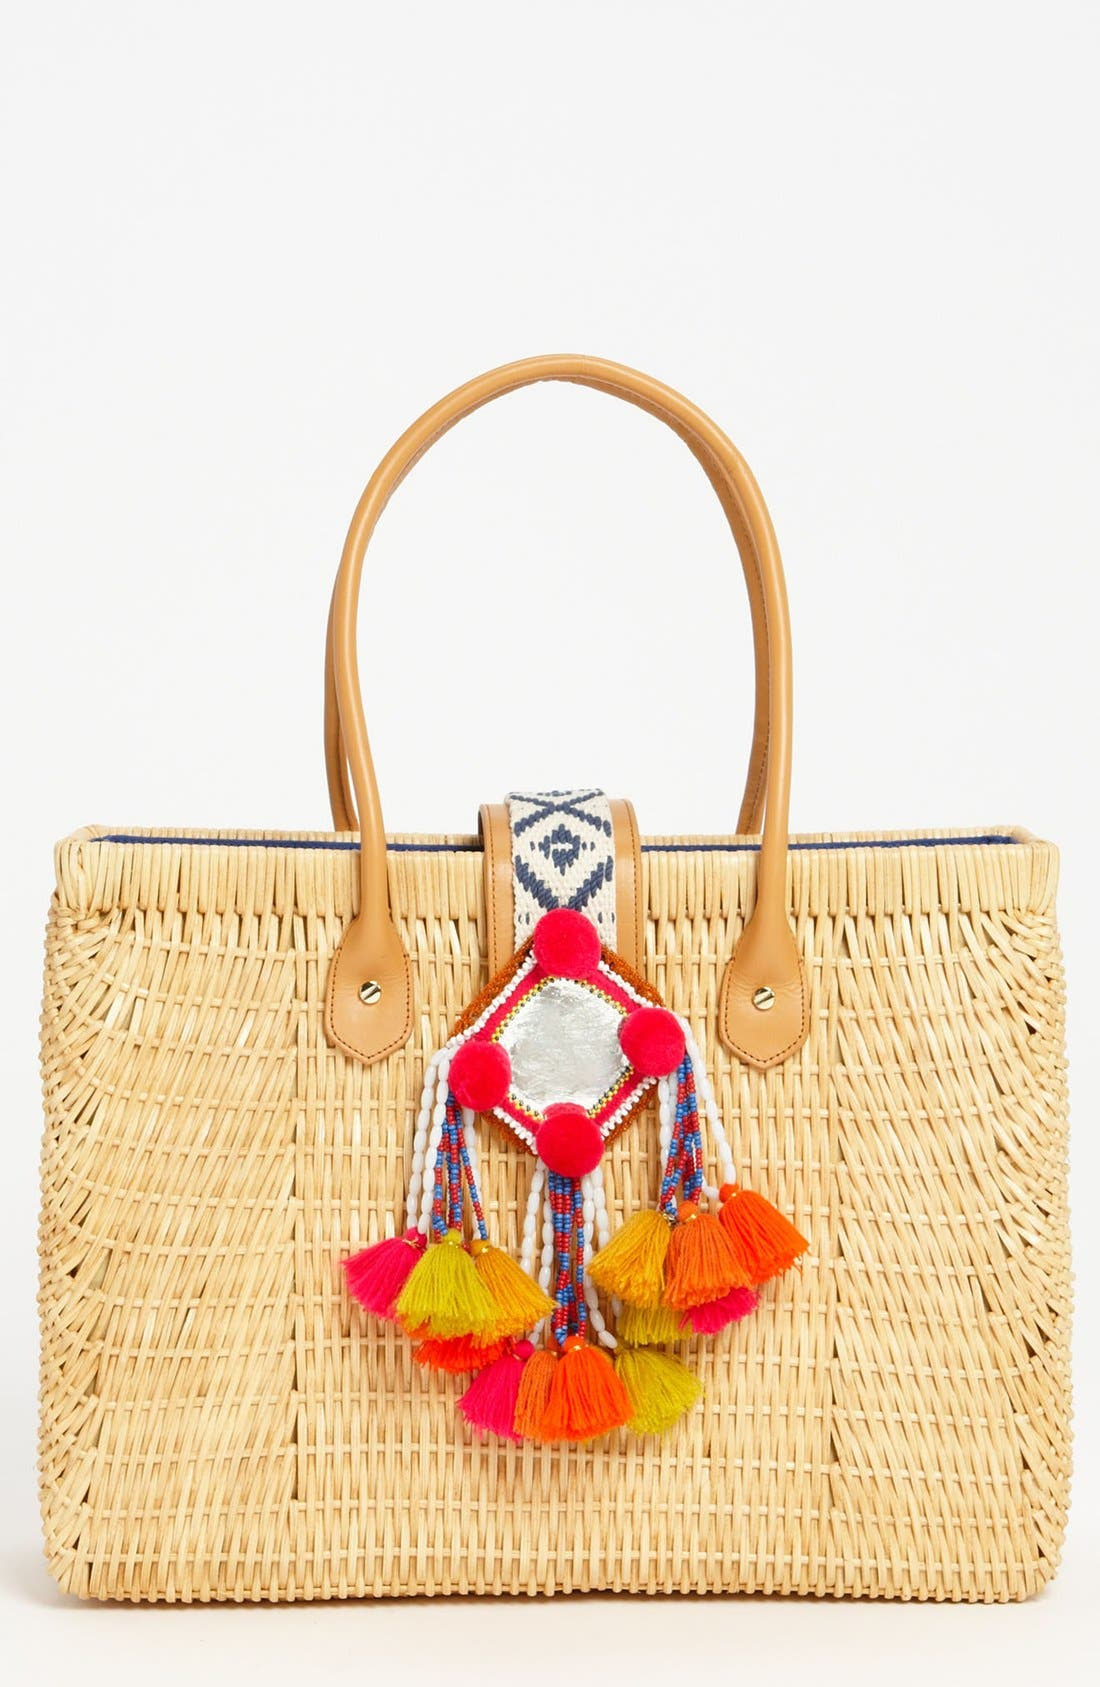 TORY BURCH, Rattan Tote, Main thumbnail 1, color, 282